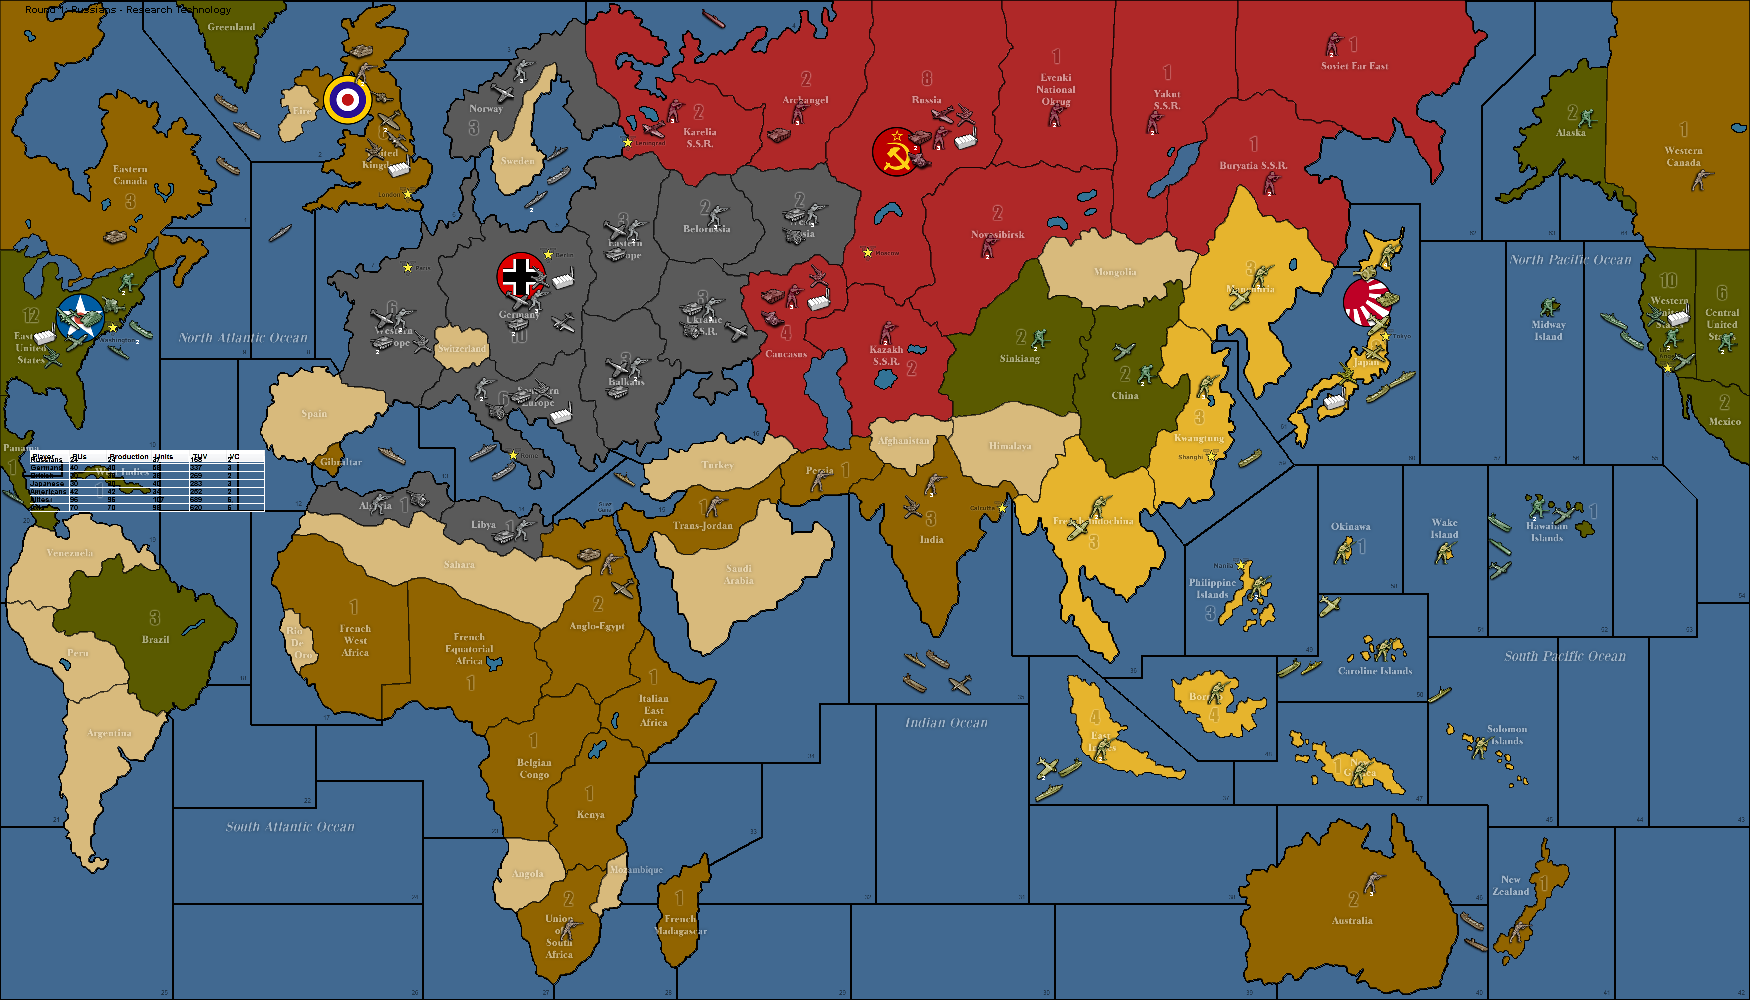 World war ii revised axis allies wiki fandom powered by wikia world war ii revised gumiabroncs